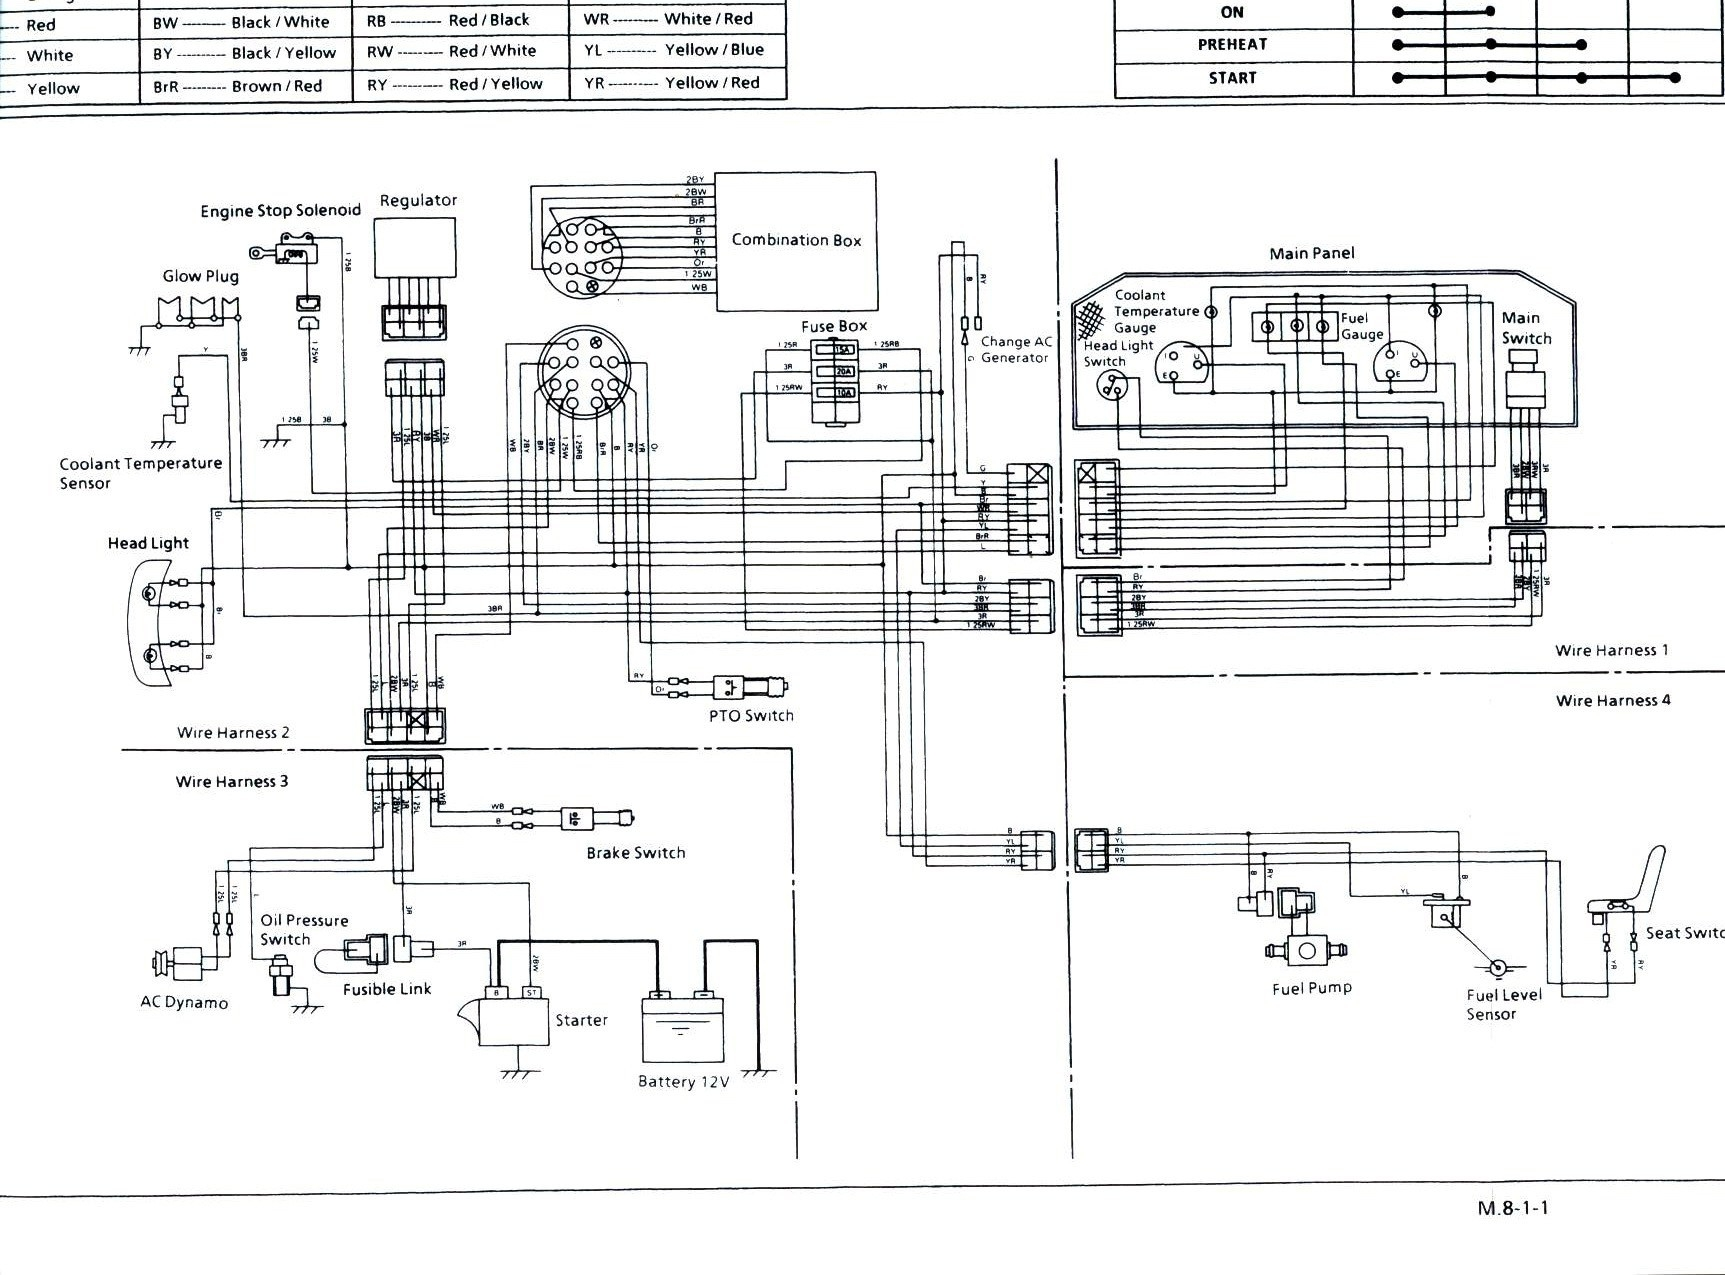 hight resolution of rtv 900 wiring diagram wiring diagram inside 2006 kubota rtv 900 wiring diagram kubota rtv 900 wiring diagram